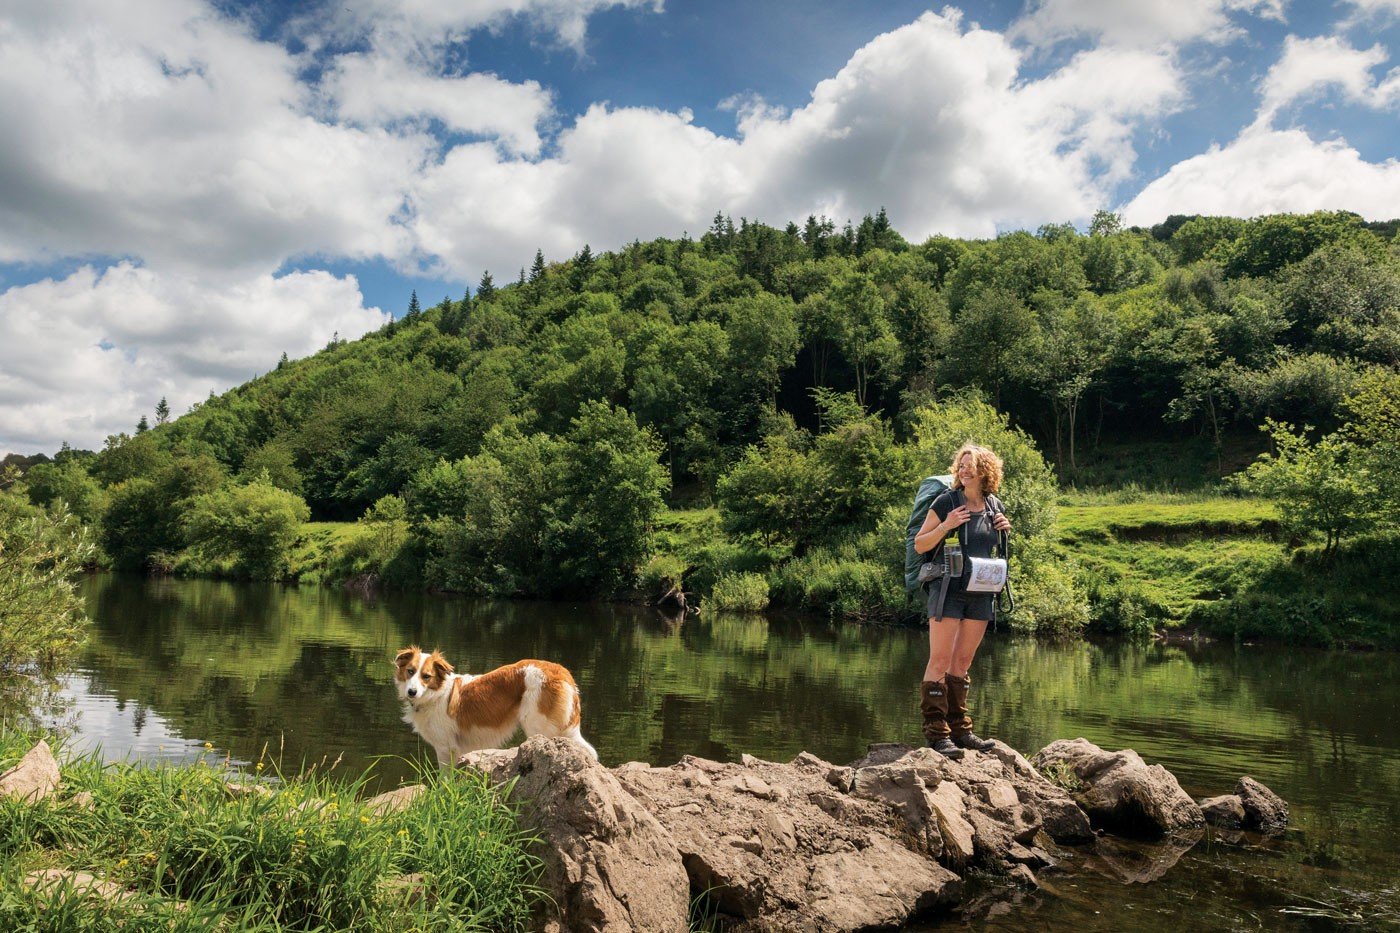 Teg-and-Kate-admire-view-of-River-Wye-6029781